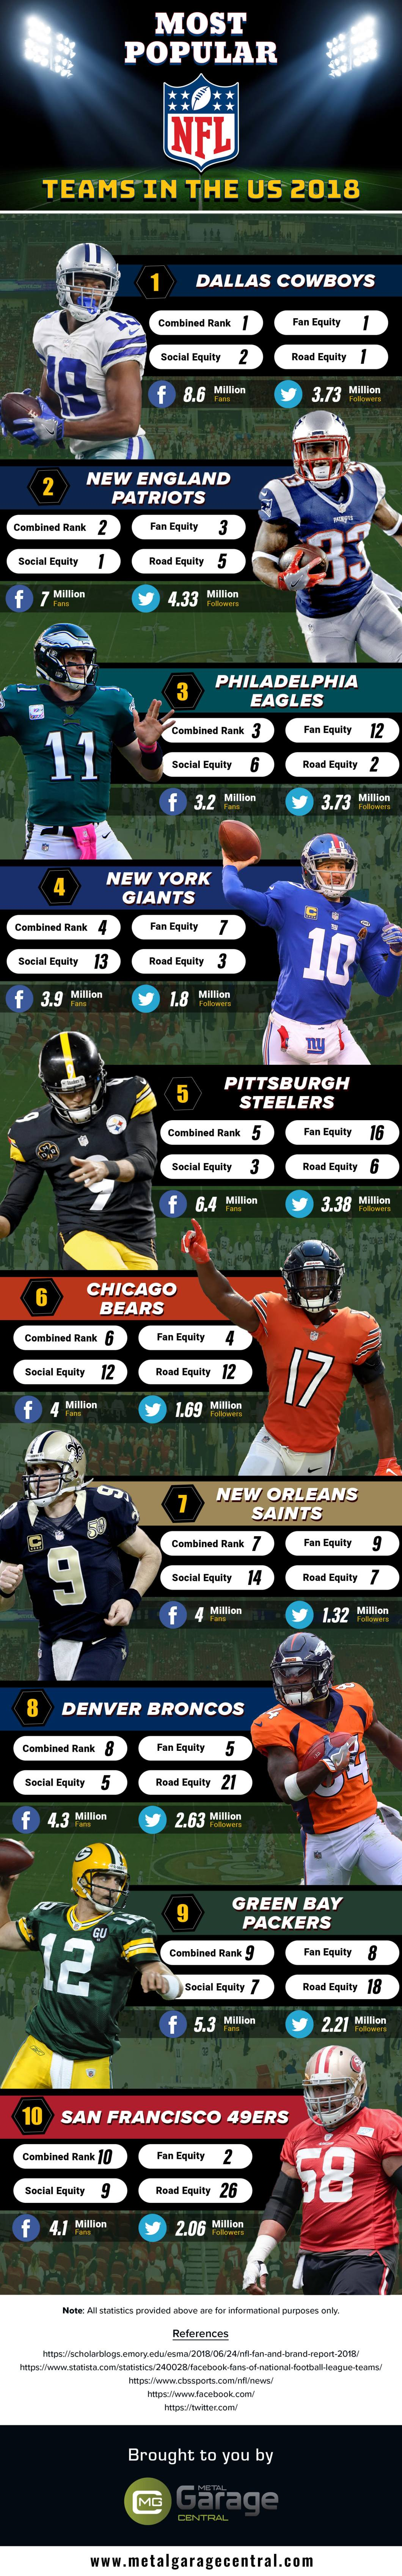 'The Greatest Game Ever Played': NFL Teams Popularity Ranking - 2018 - Infographic